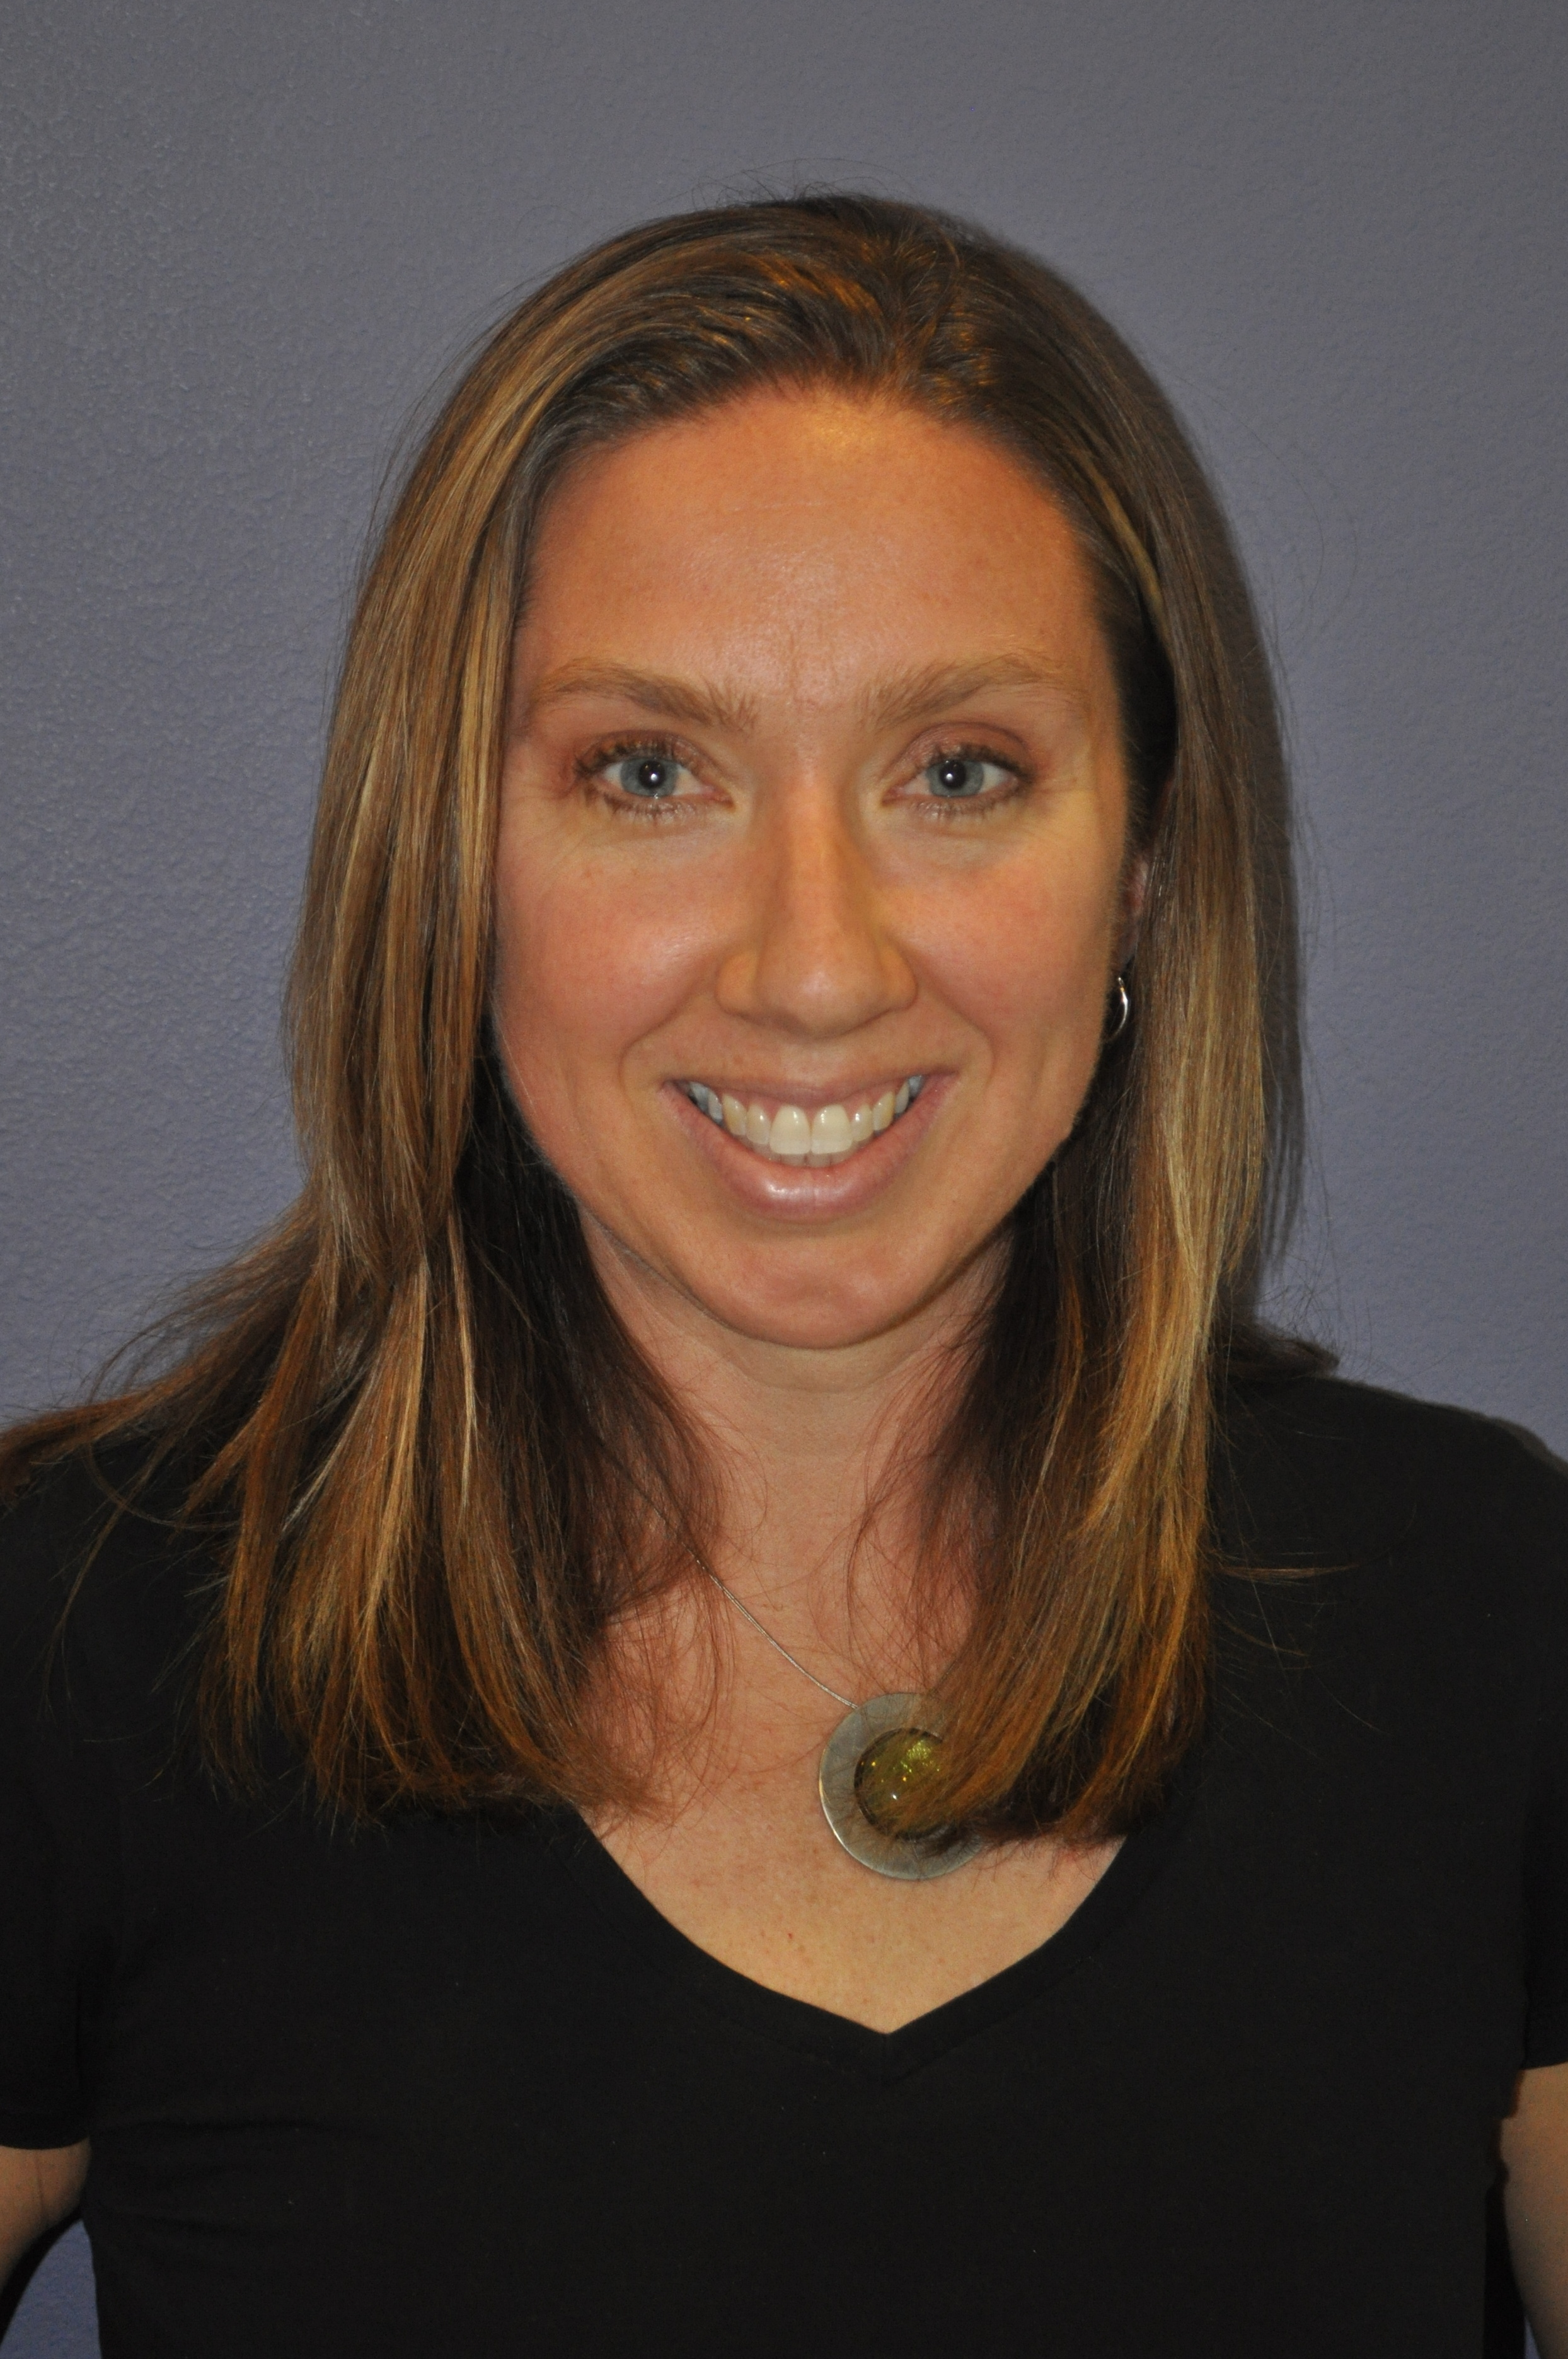 Gig harbor physical therapy - In The Last 16 Years She Has Been Practicing In Outpatient Physical Therapy In Hawaii Tacoma And Now Gig Harbor